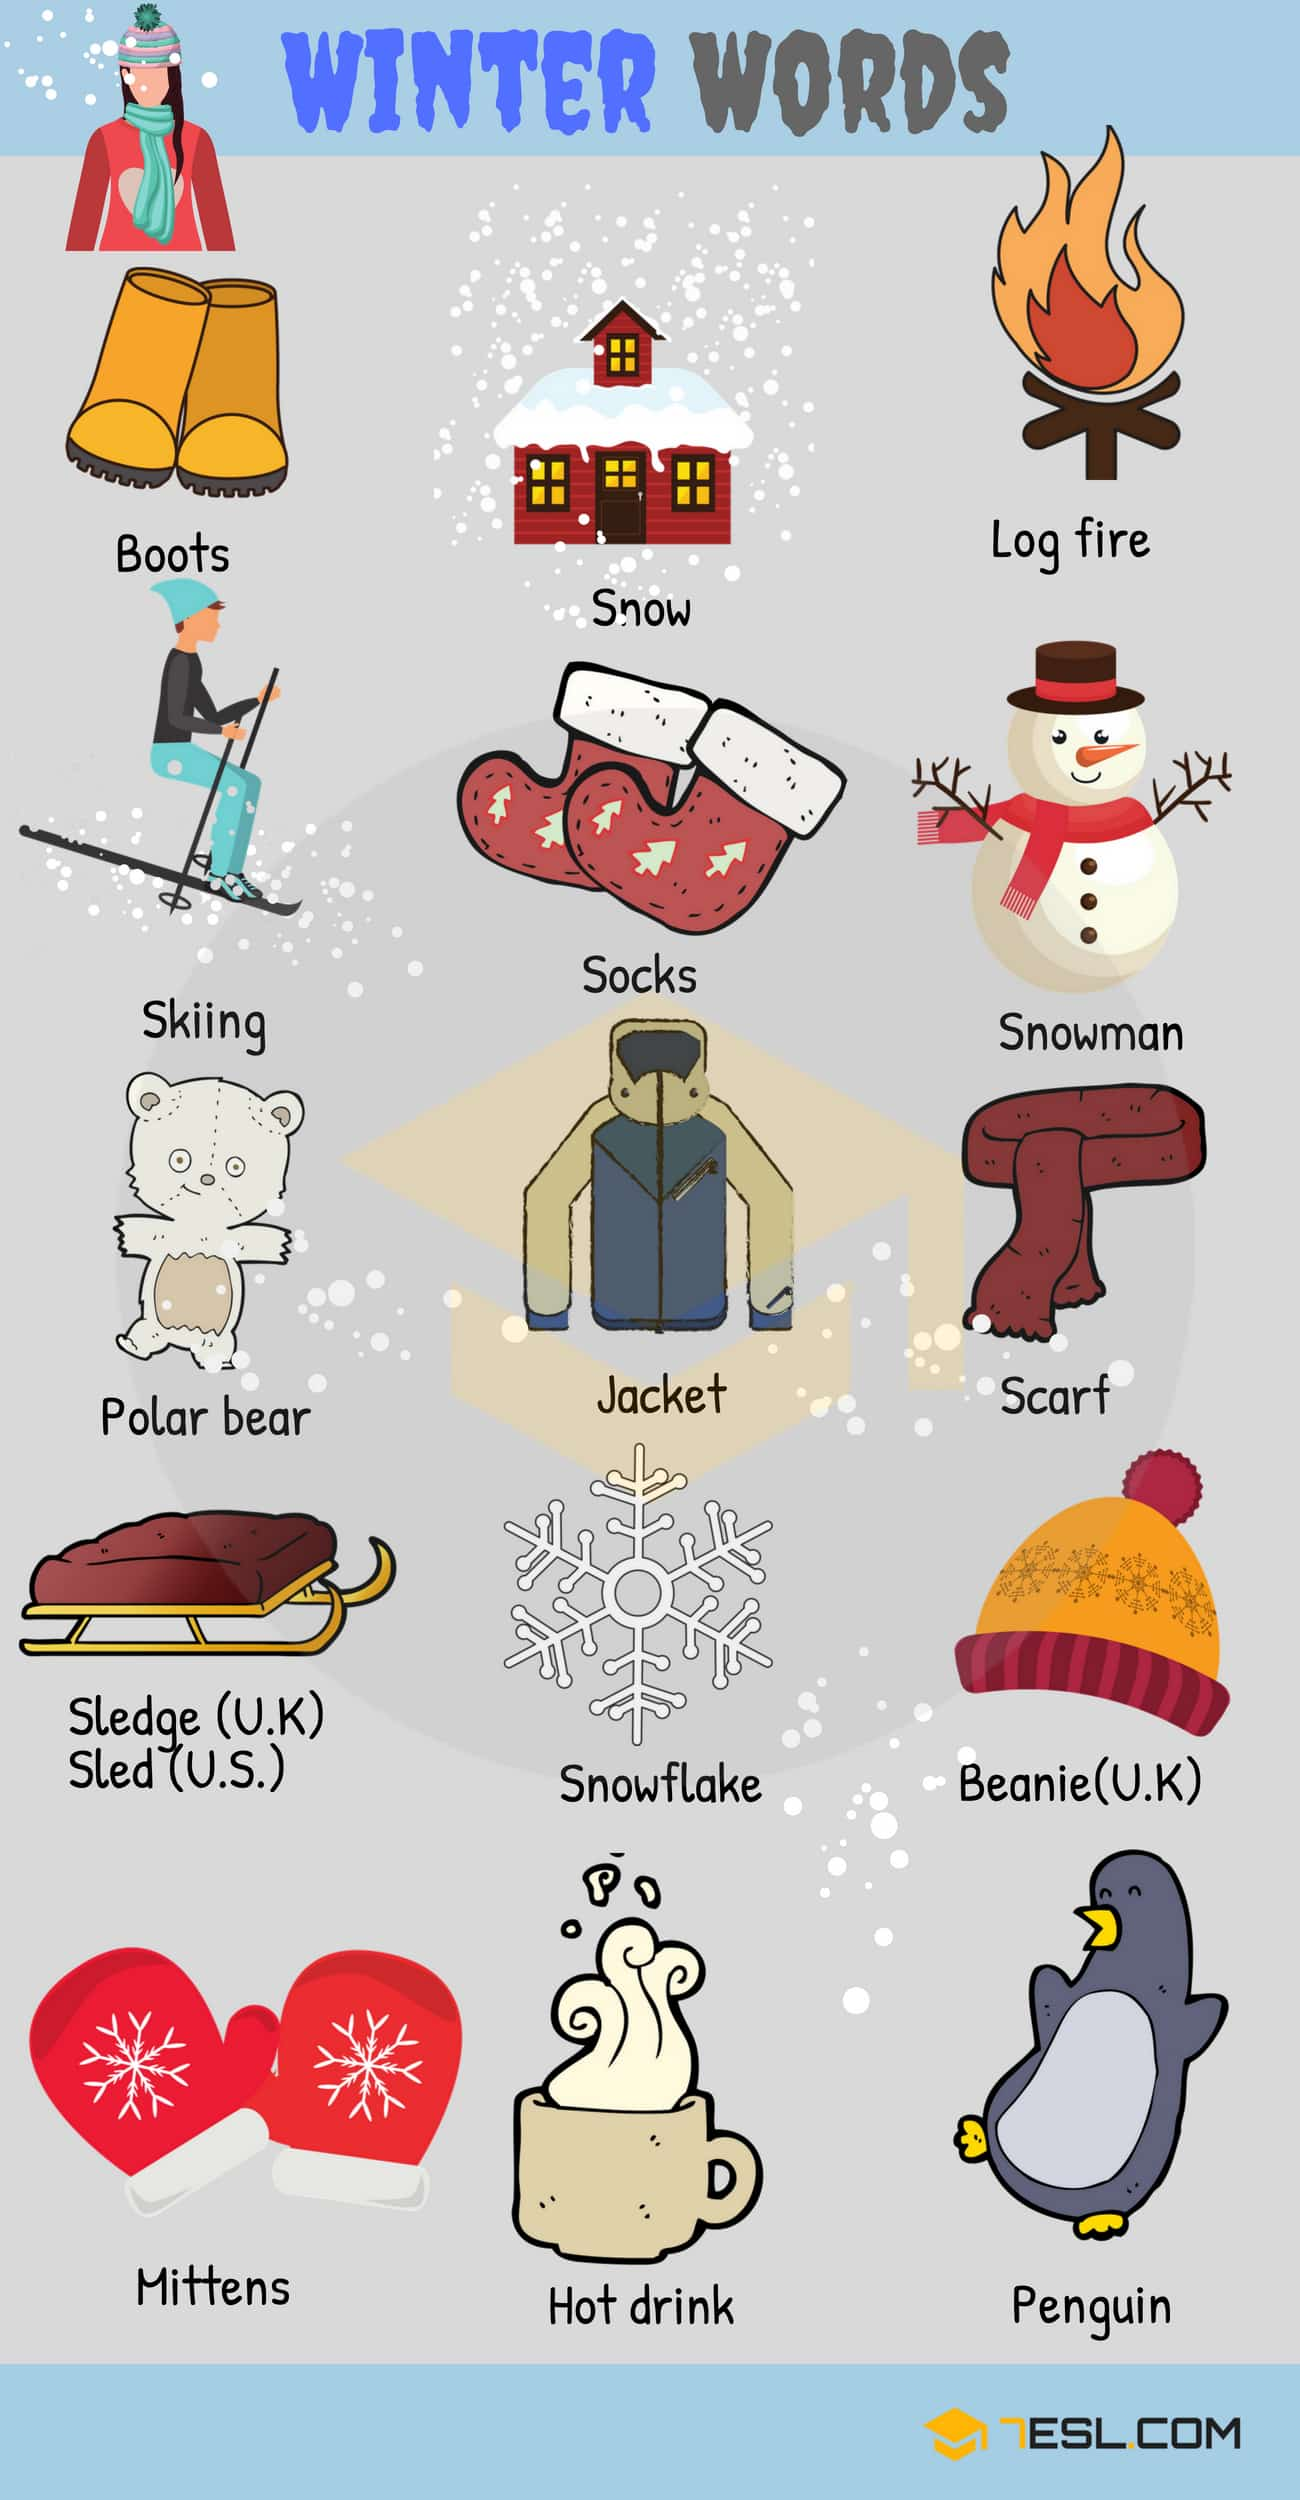 Winter Words Useful Winter Vocabulary With Pictures